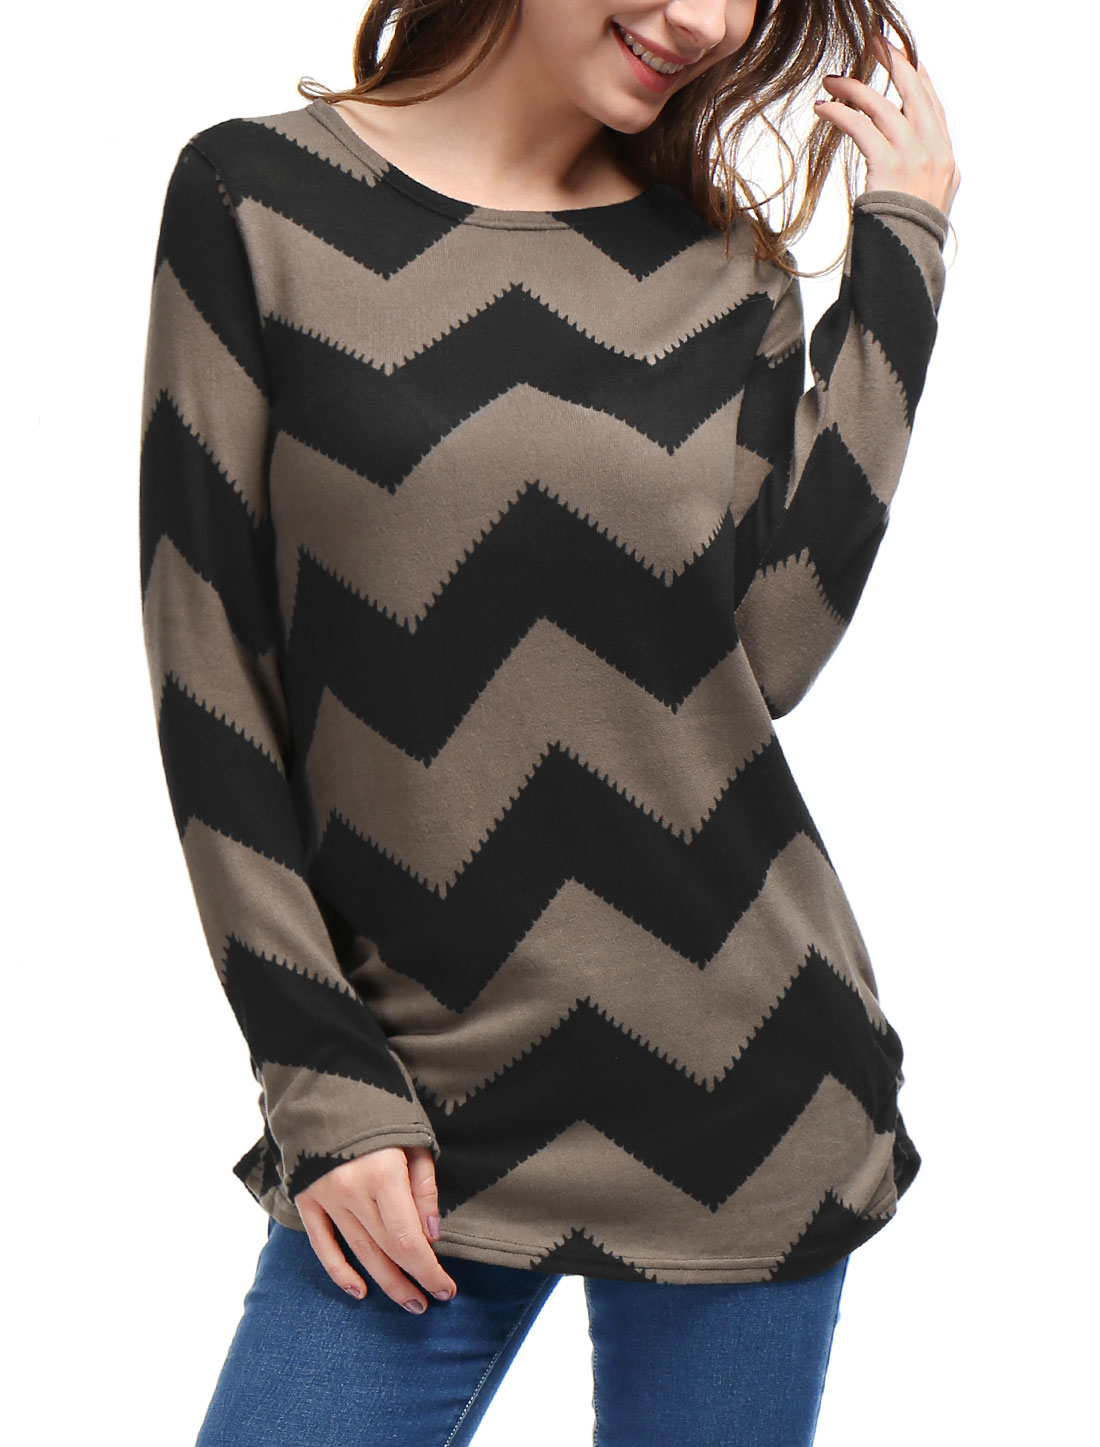 Woman Zig-Zag Pattern Knitted Loose Tunic Shirt Black Brown L